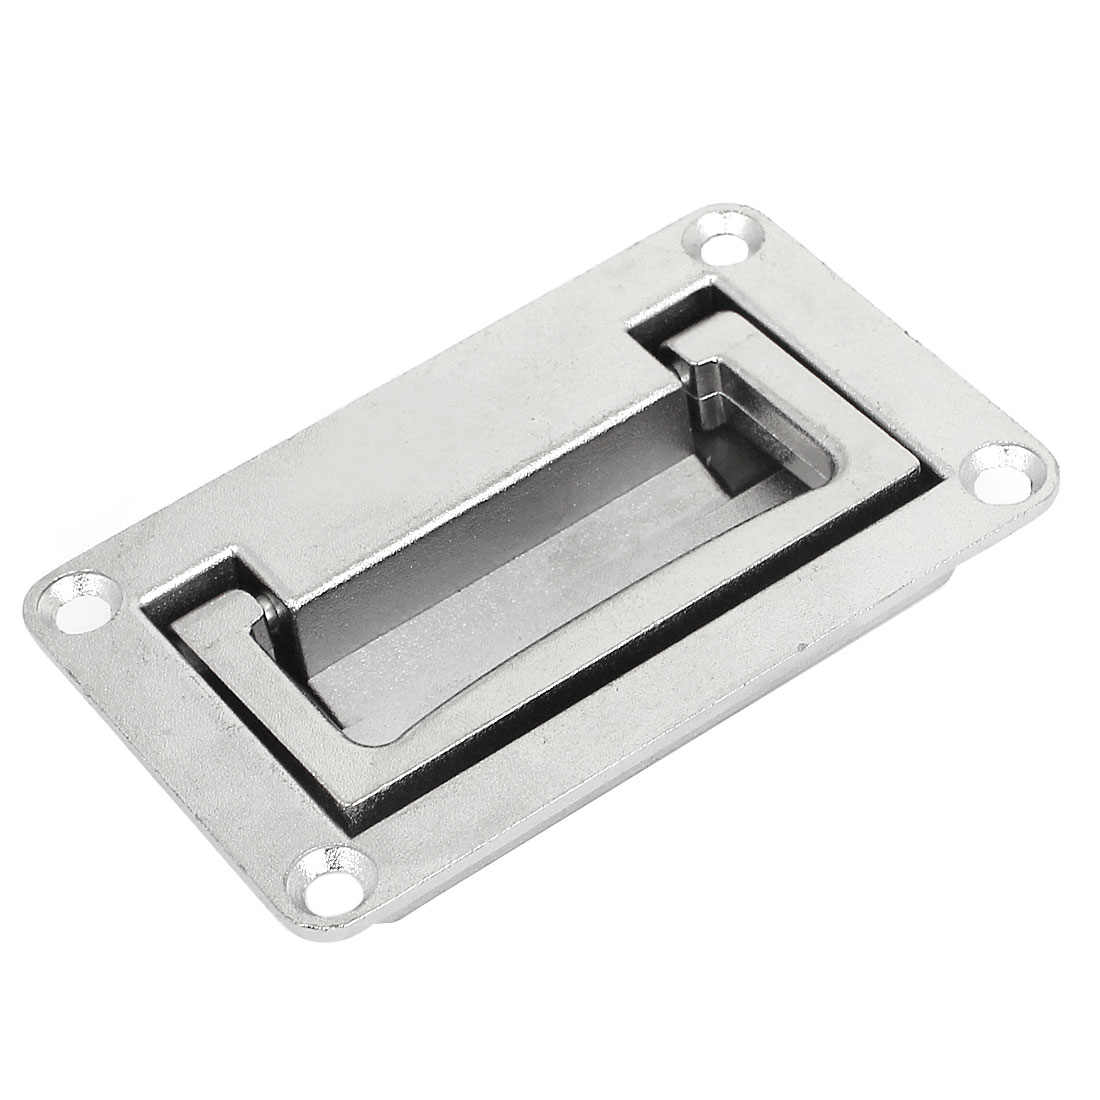 Cupboard Cabinet Rectangle Shaped Recessed Folding Pull Handle Grip 9.5 x 6cm